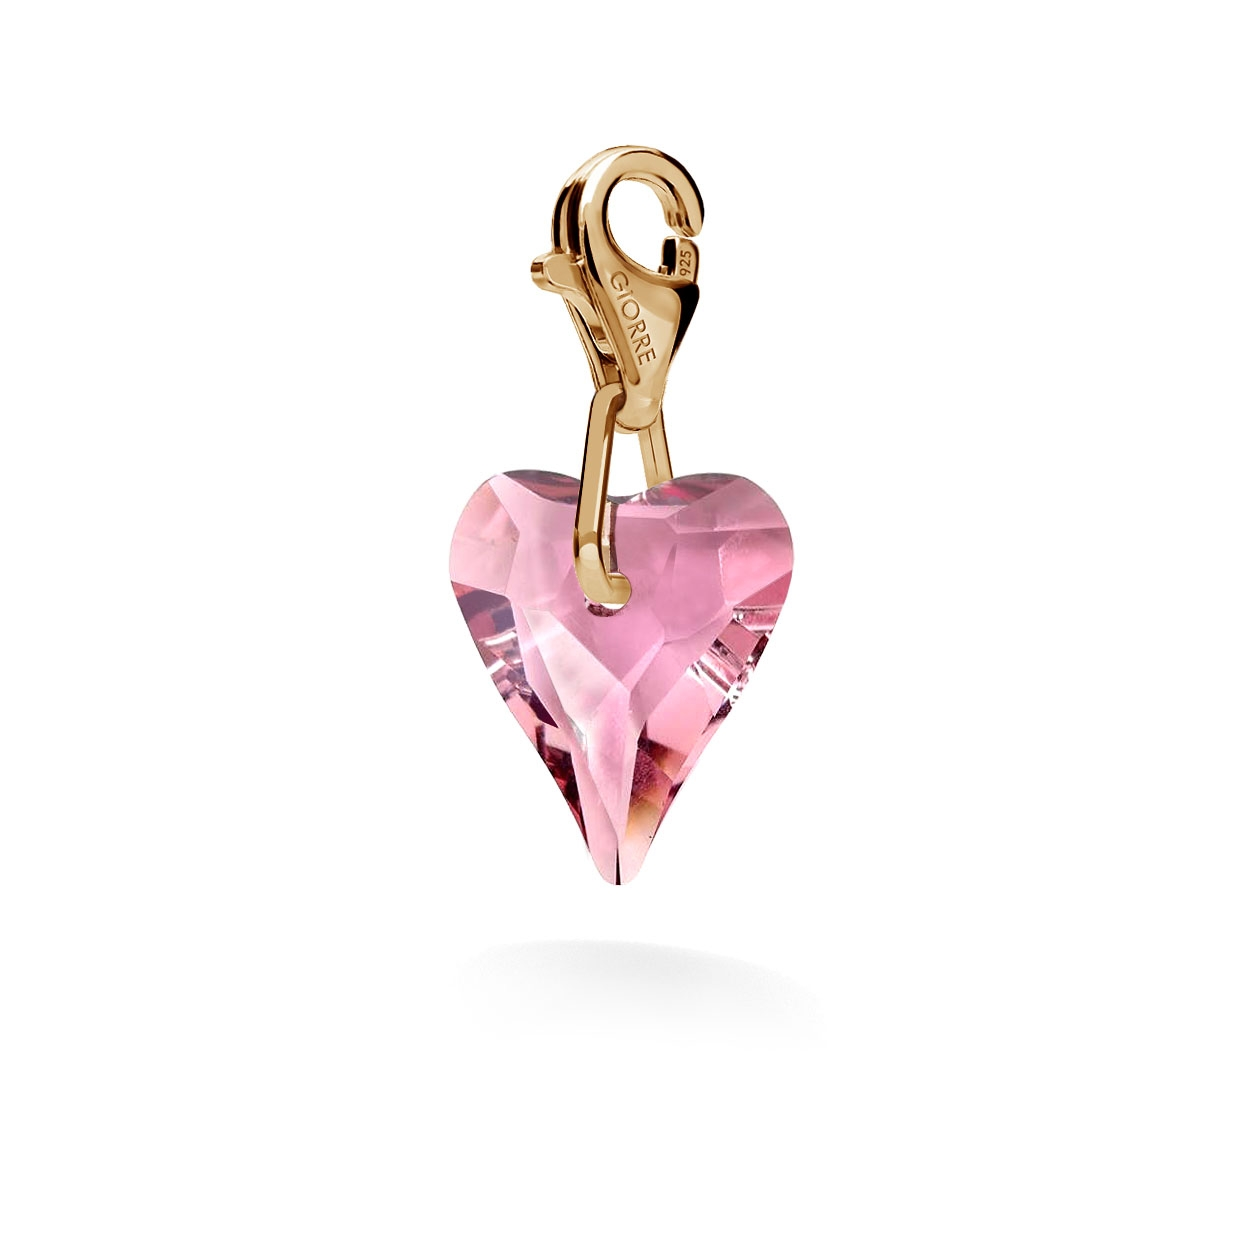 CHARM 66, SWAROVSKI 6240 MM 12, STERLING SILVER (925) RHODIUM OR GOLD PLATED